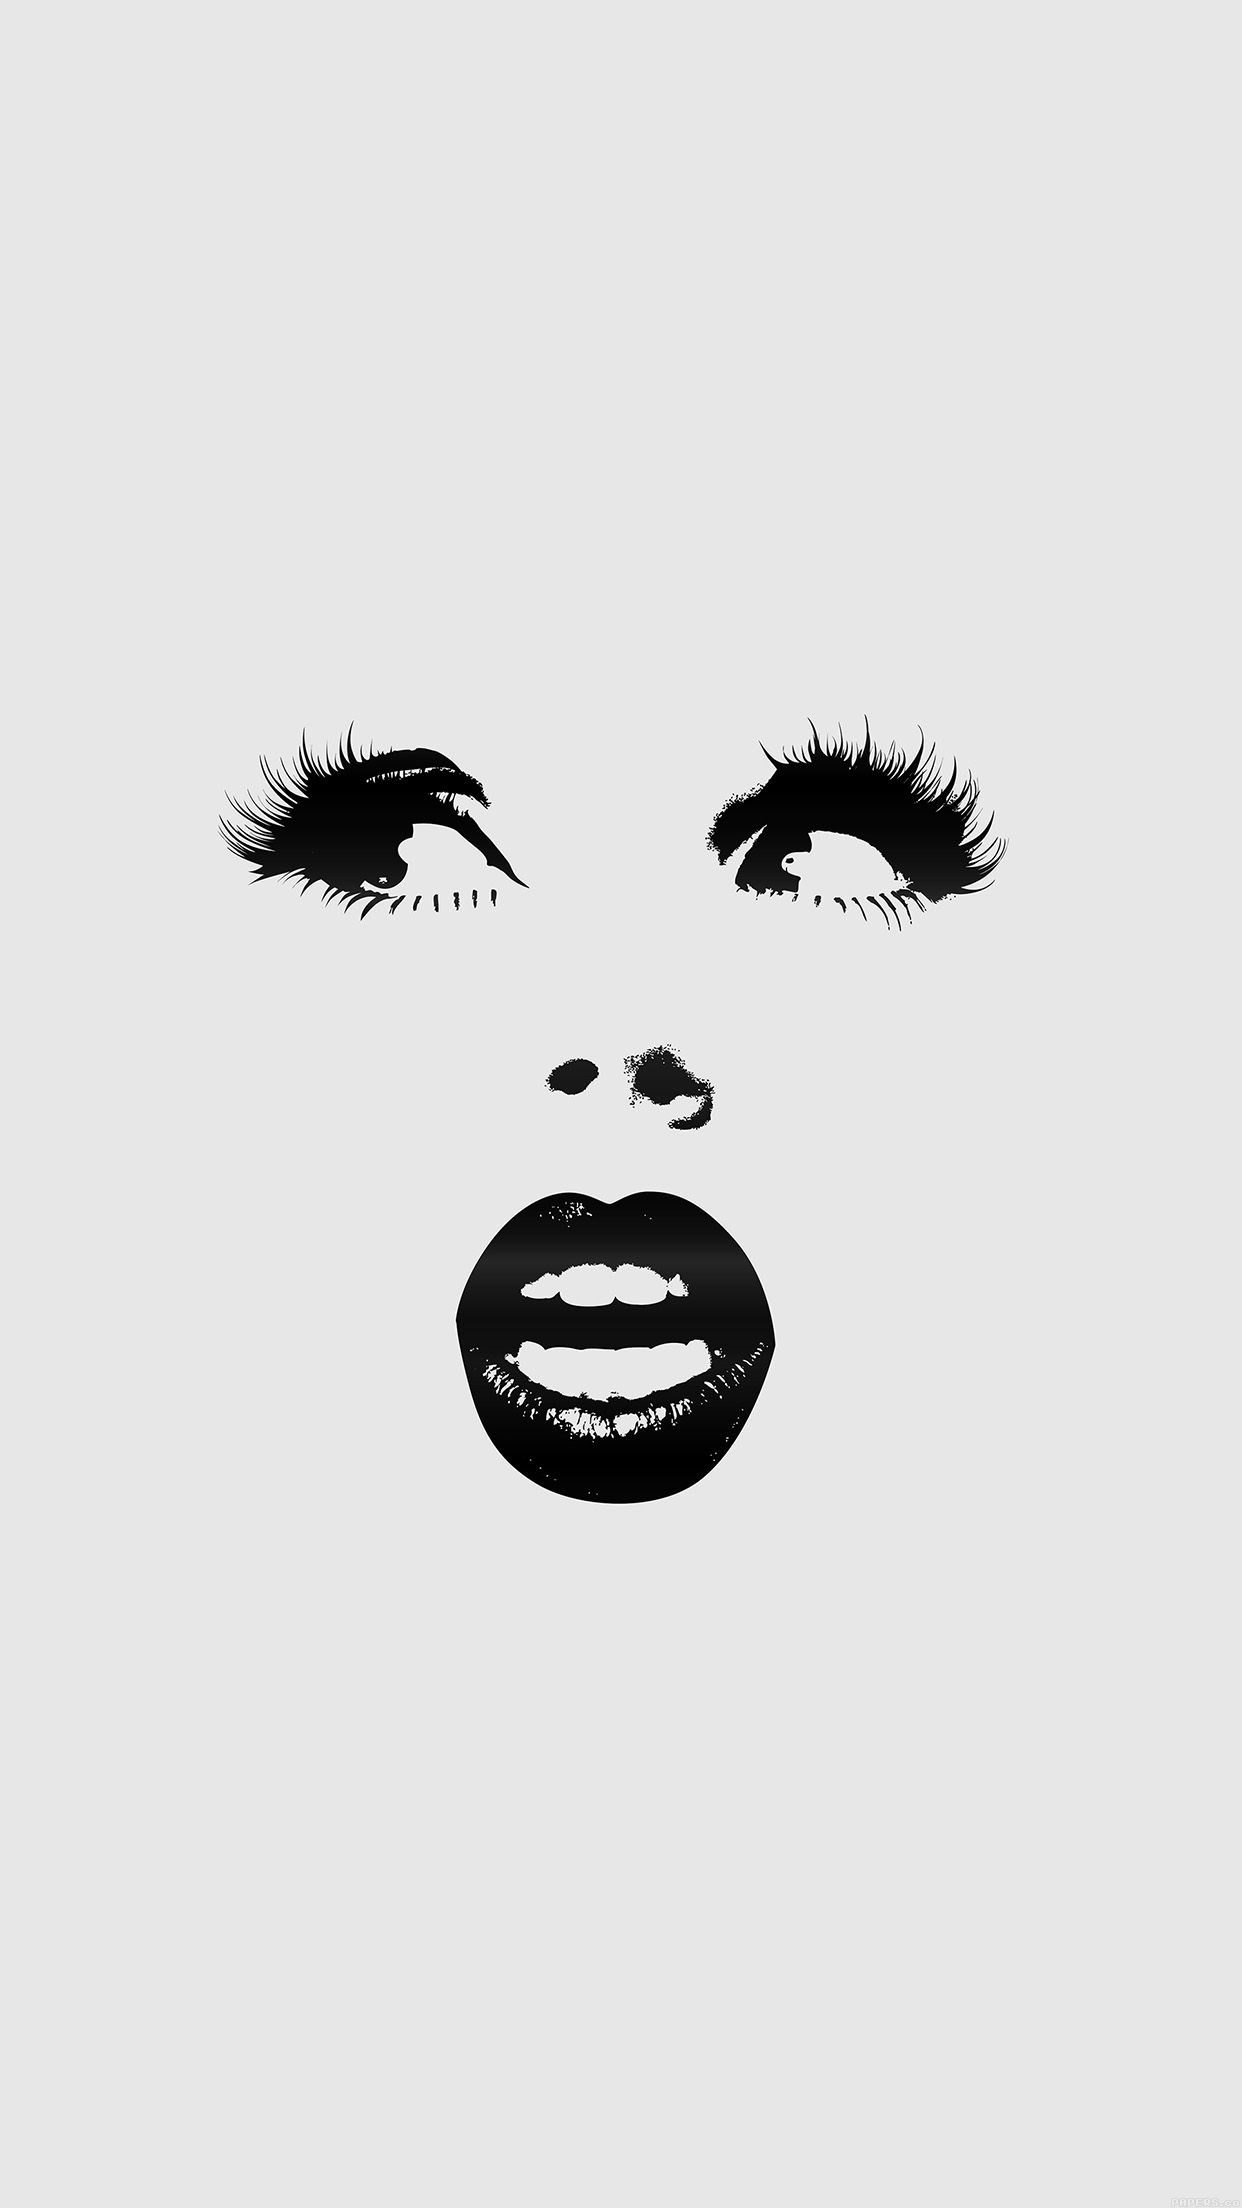 Minimalist iphone wallpaper tumblr - Girlish Girly Face Lips Eyes Minimalistic Stylish Girl Black And White Hd Iphone 6 Plus Wallpaper